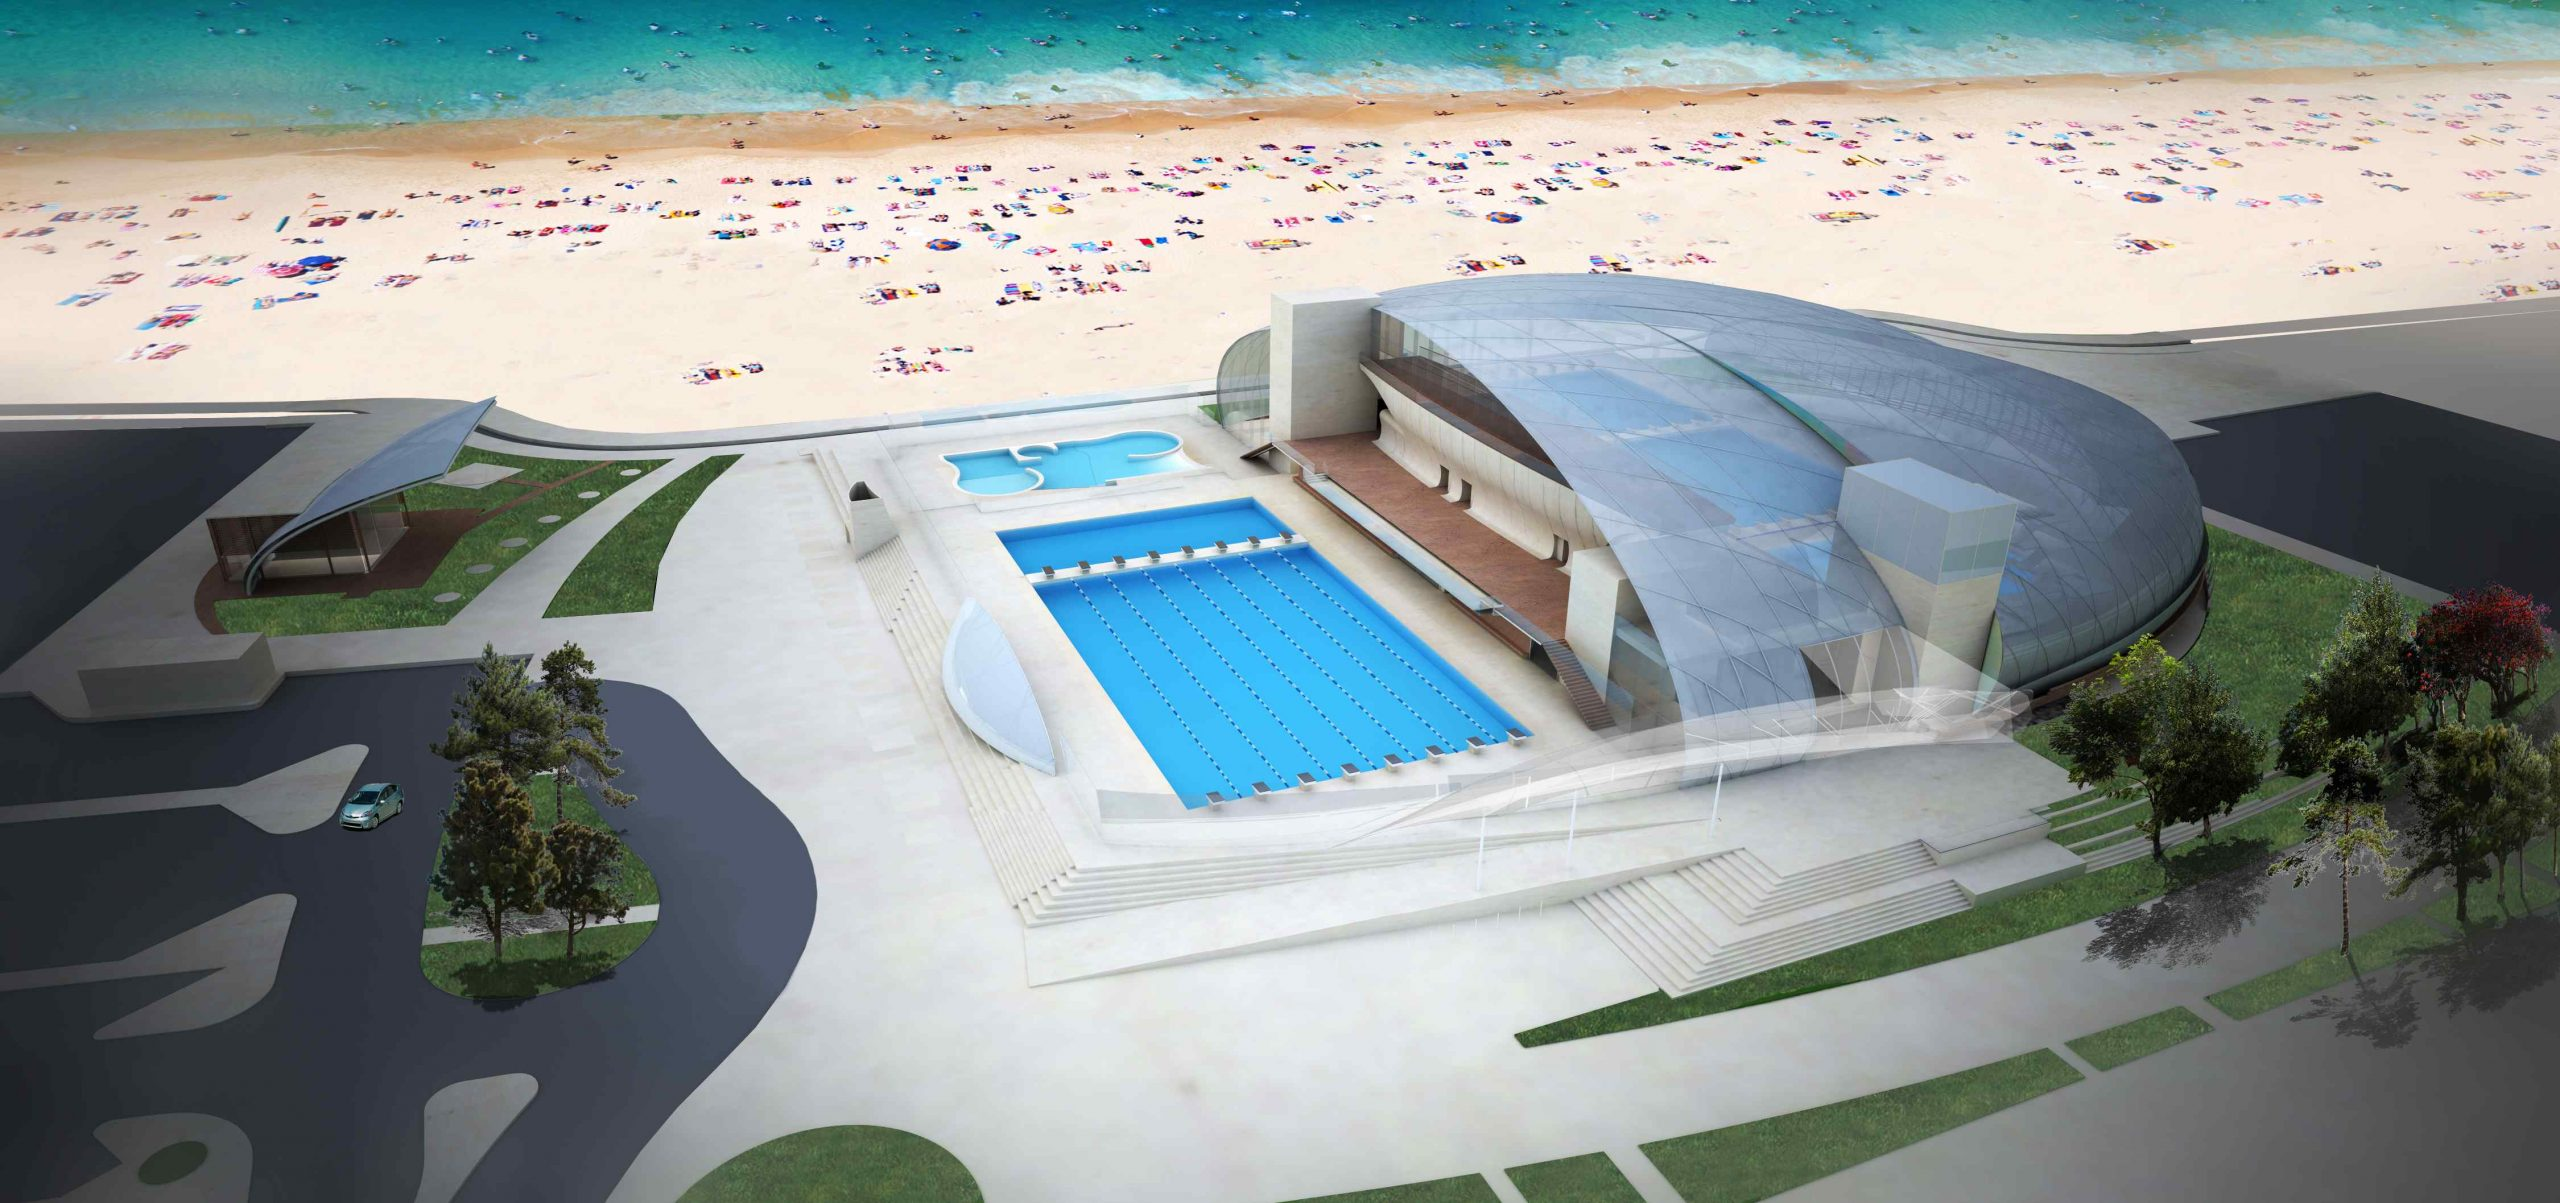 Belmont Beach and Aquatic Center – Surfrider's Position